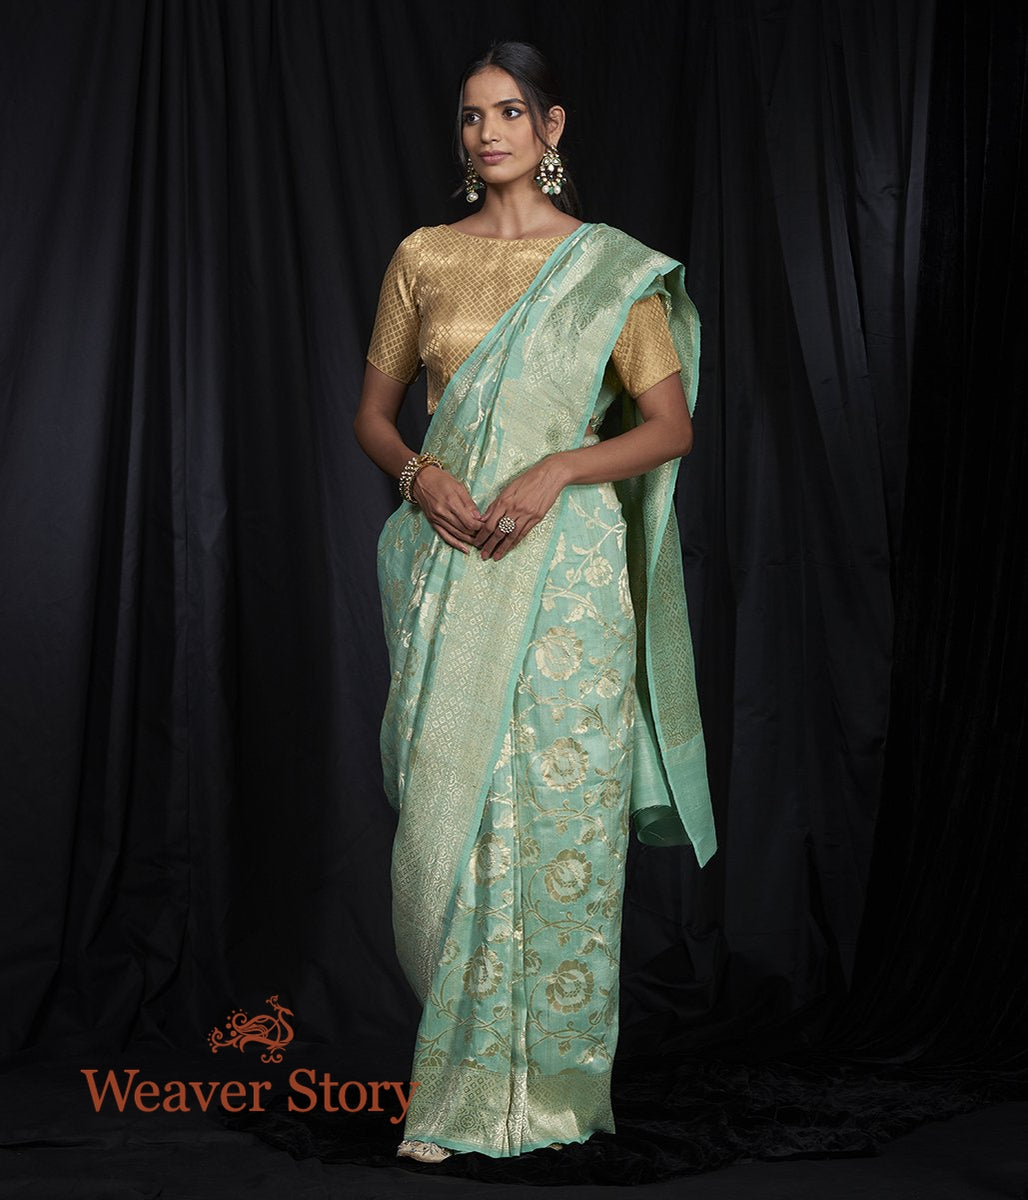 Handwoven Tusser Georgette Saree with Cutwork Floral Jaal